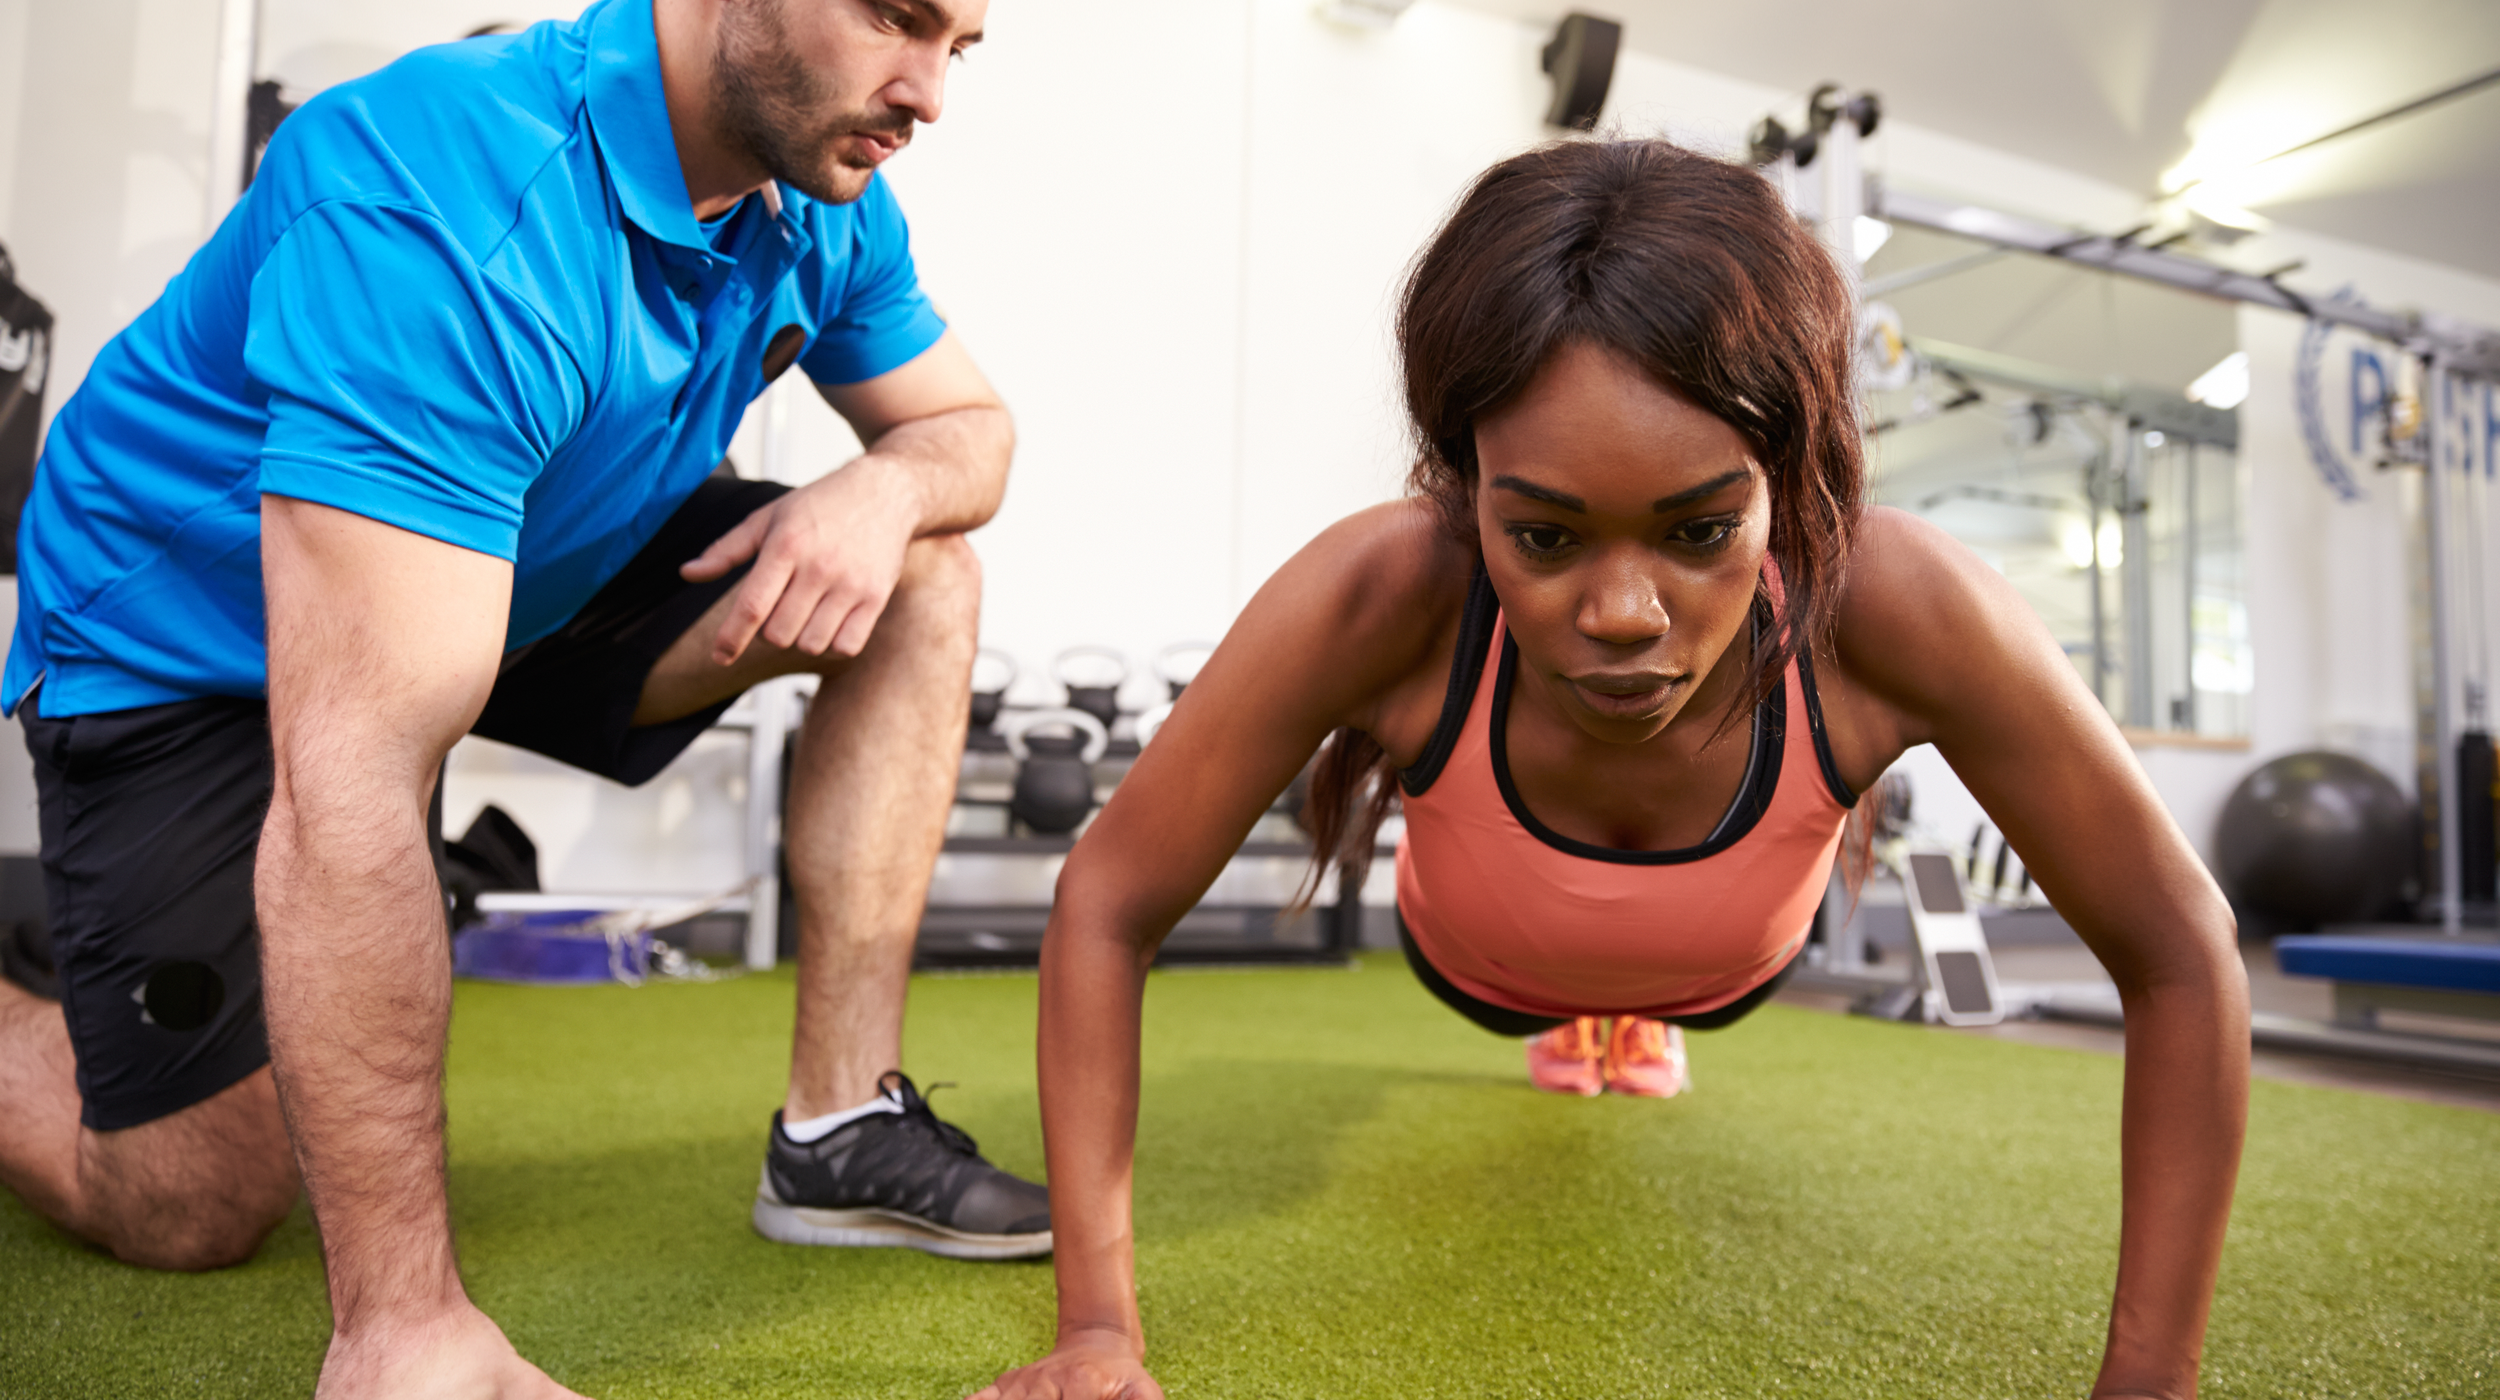 The Most Important Skill For Personal Trainers